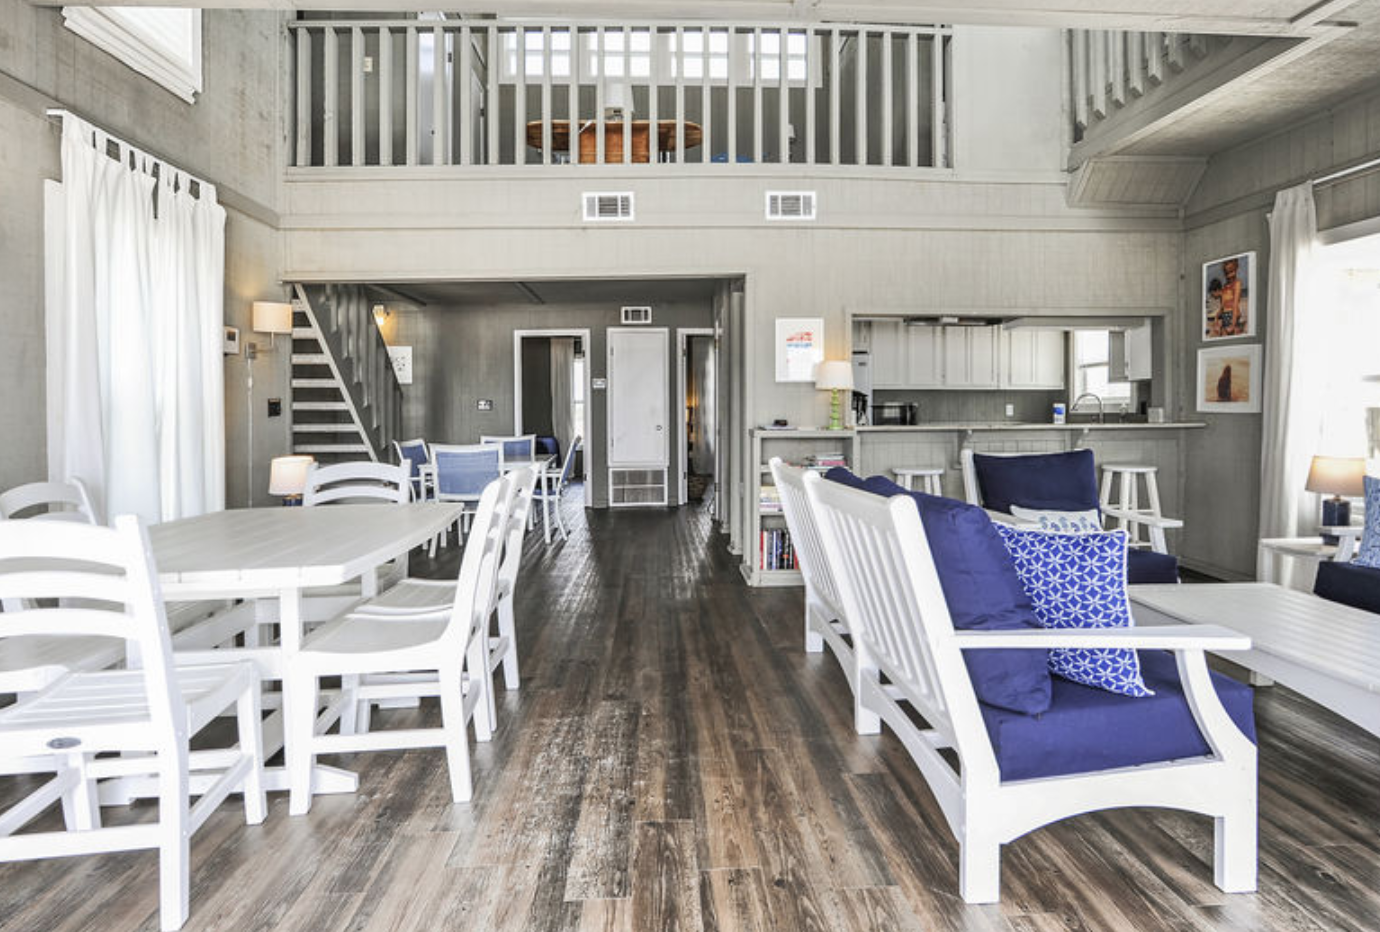 Living Space SeaHouse Vacation Rental Located At 1593 W Beach Blvd, Gulf Shores, Alabama, 36542